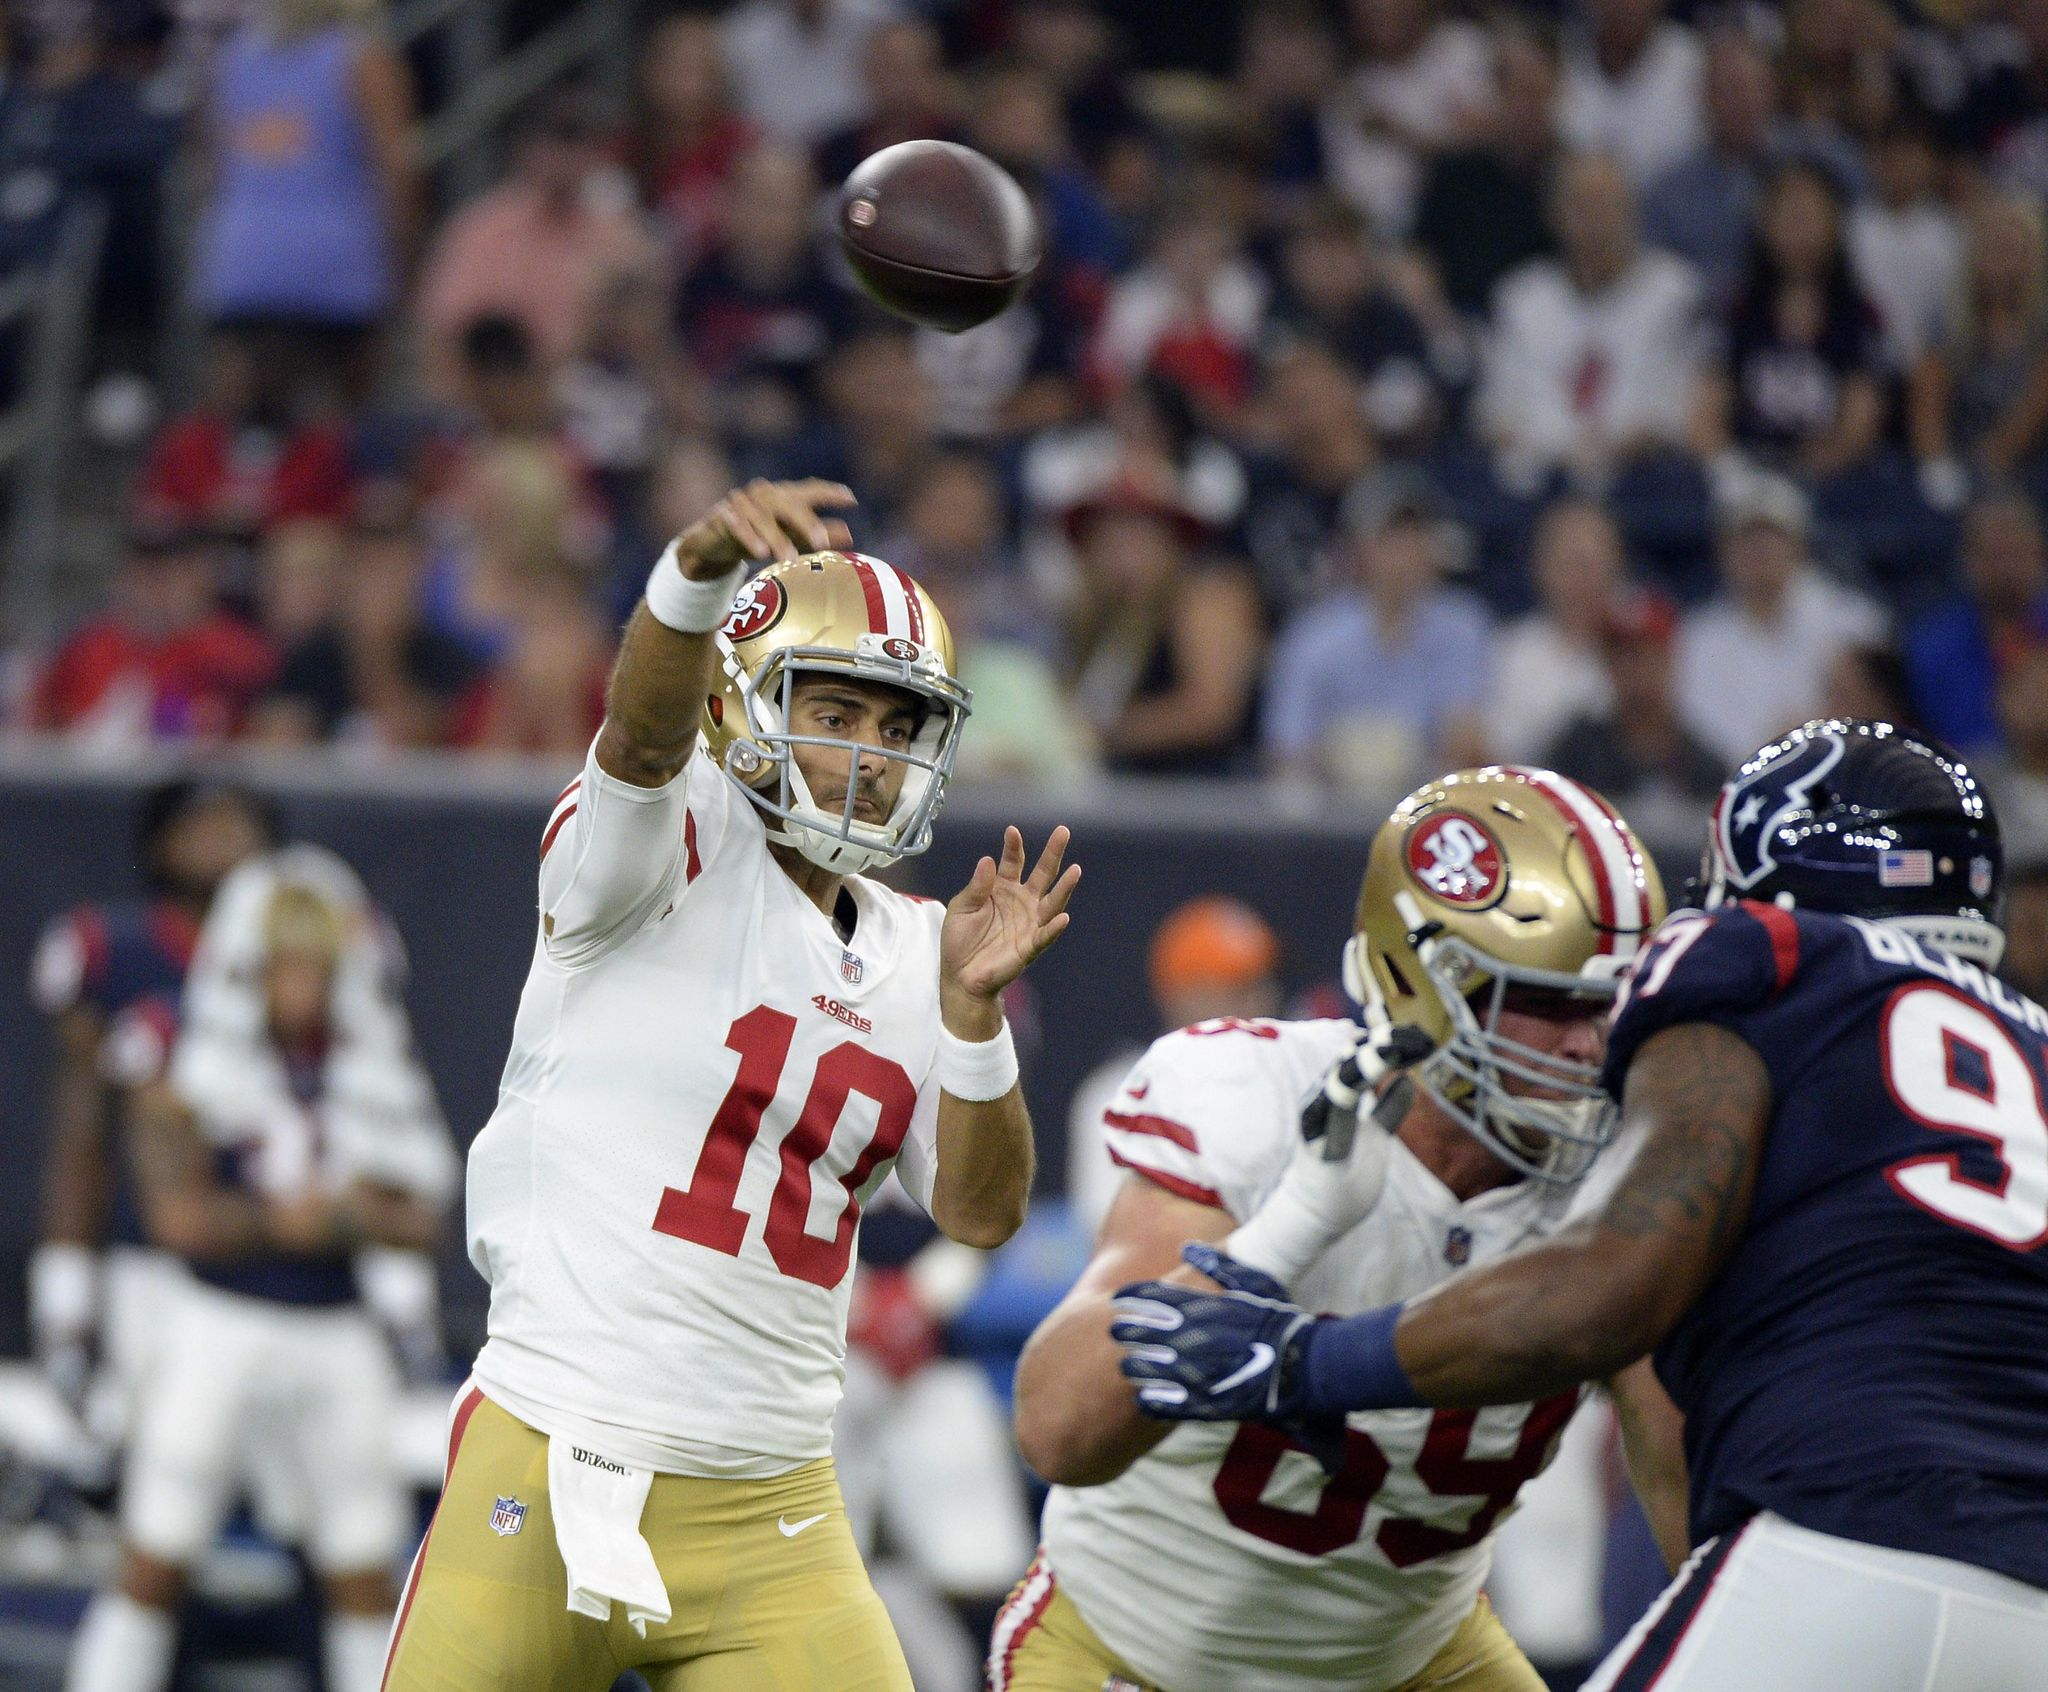 49ers_texans_football_54908_s2048x1692